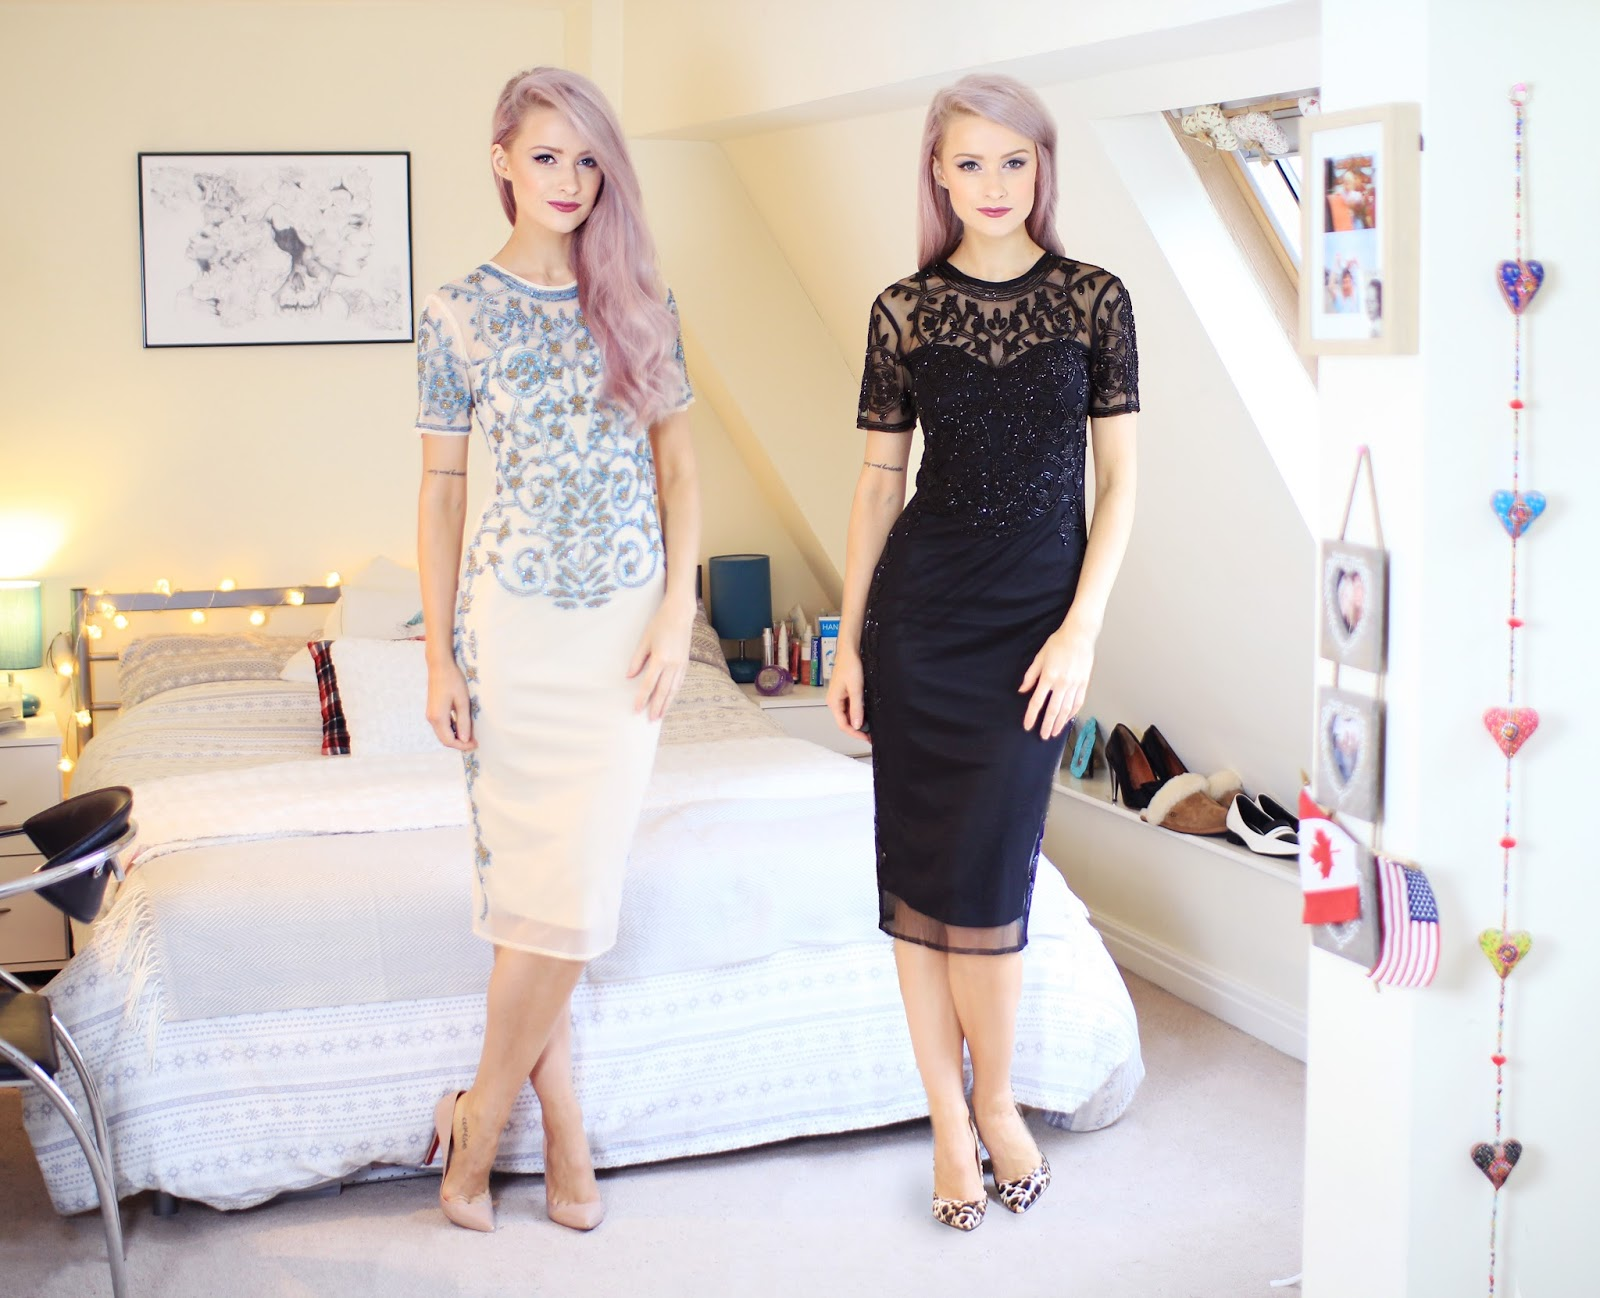 Black Vs Cream: The ASOS Baroque Embellished Dress